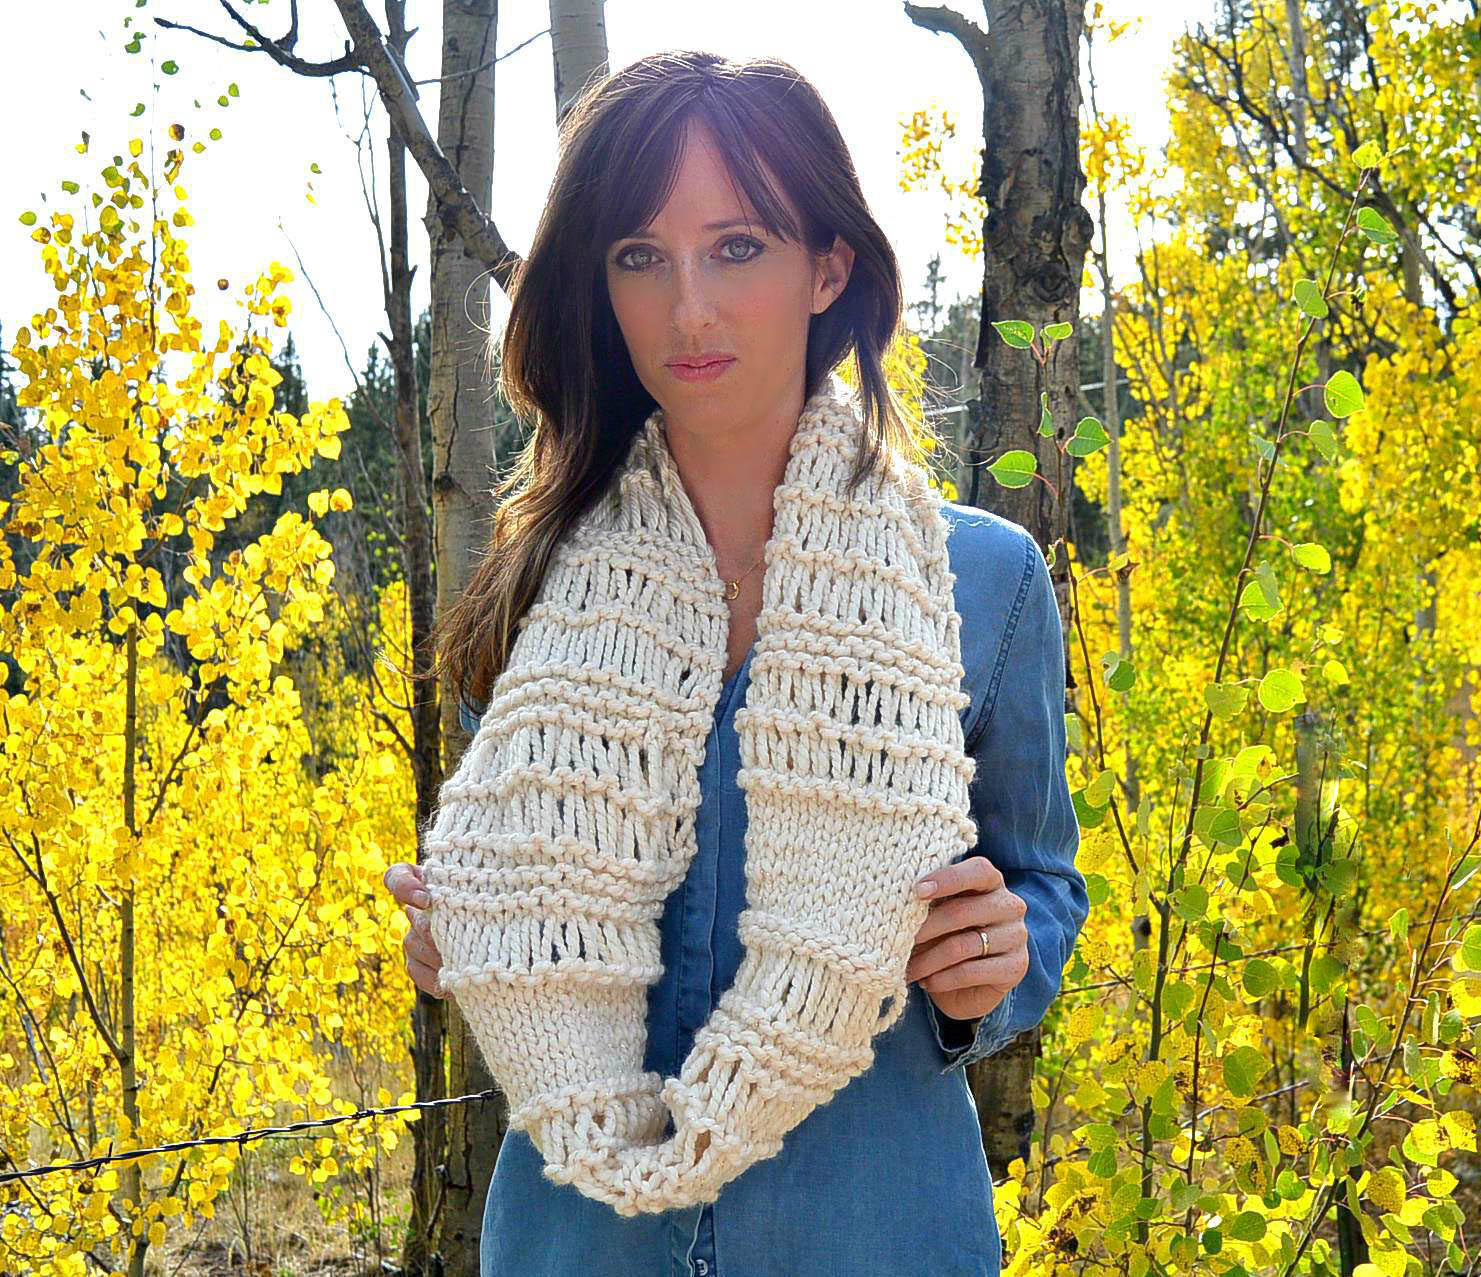 Free Knitting Pattern For Chunky Infinity Scarf : Chunky Free Pattern Knit Infinity Scarf   Mama In A Stitch